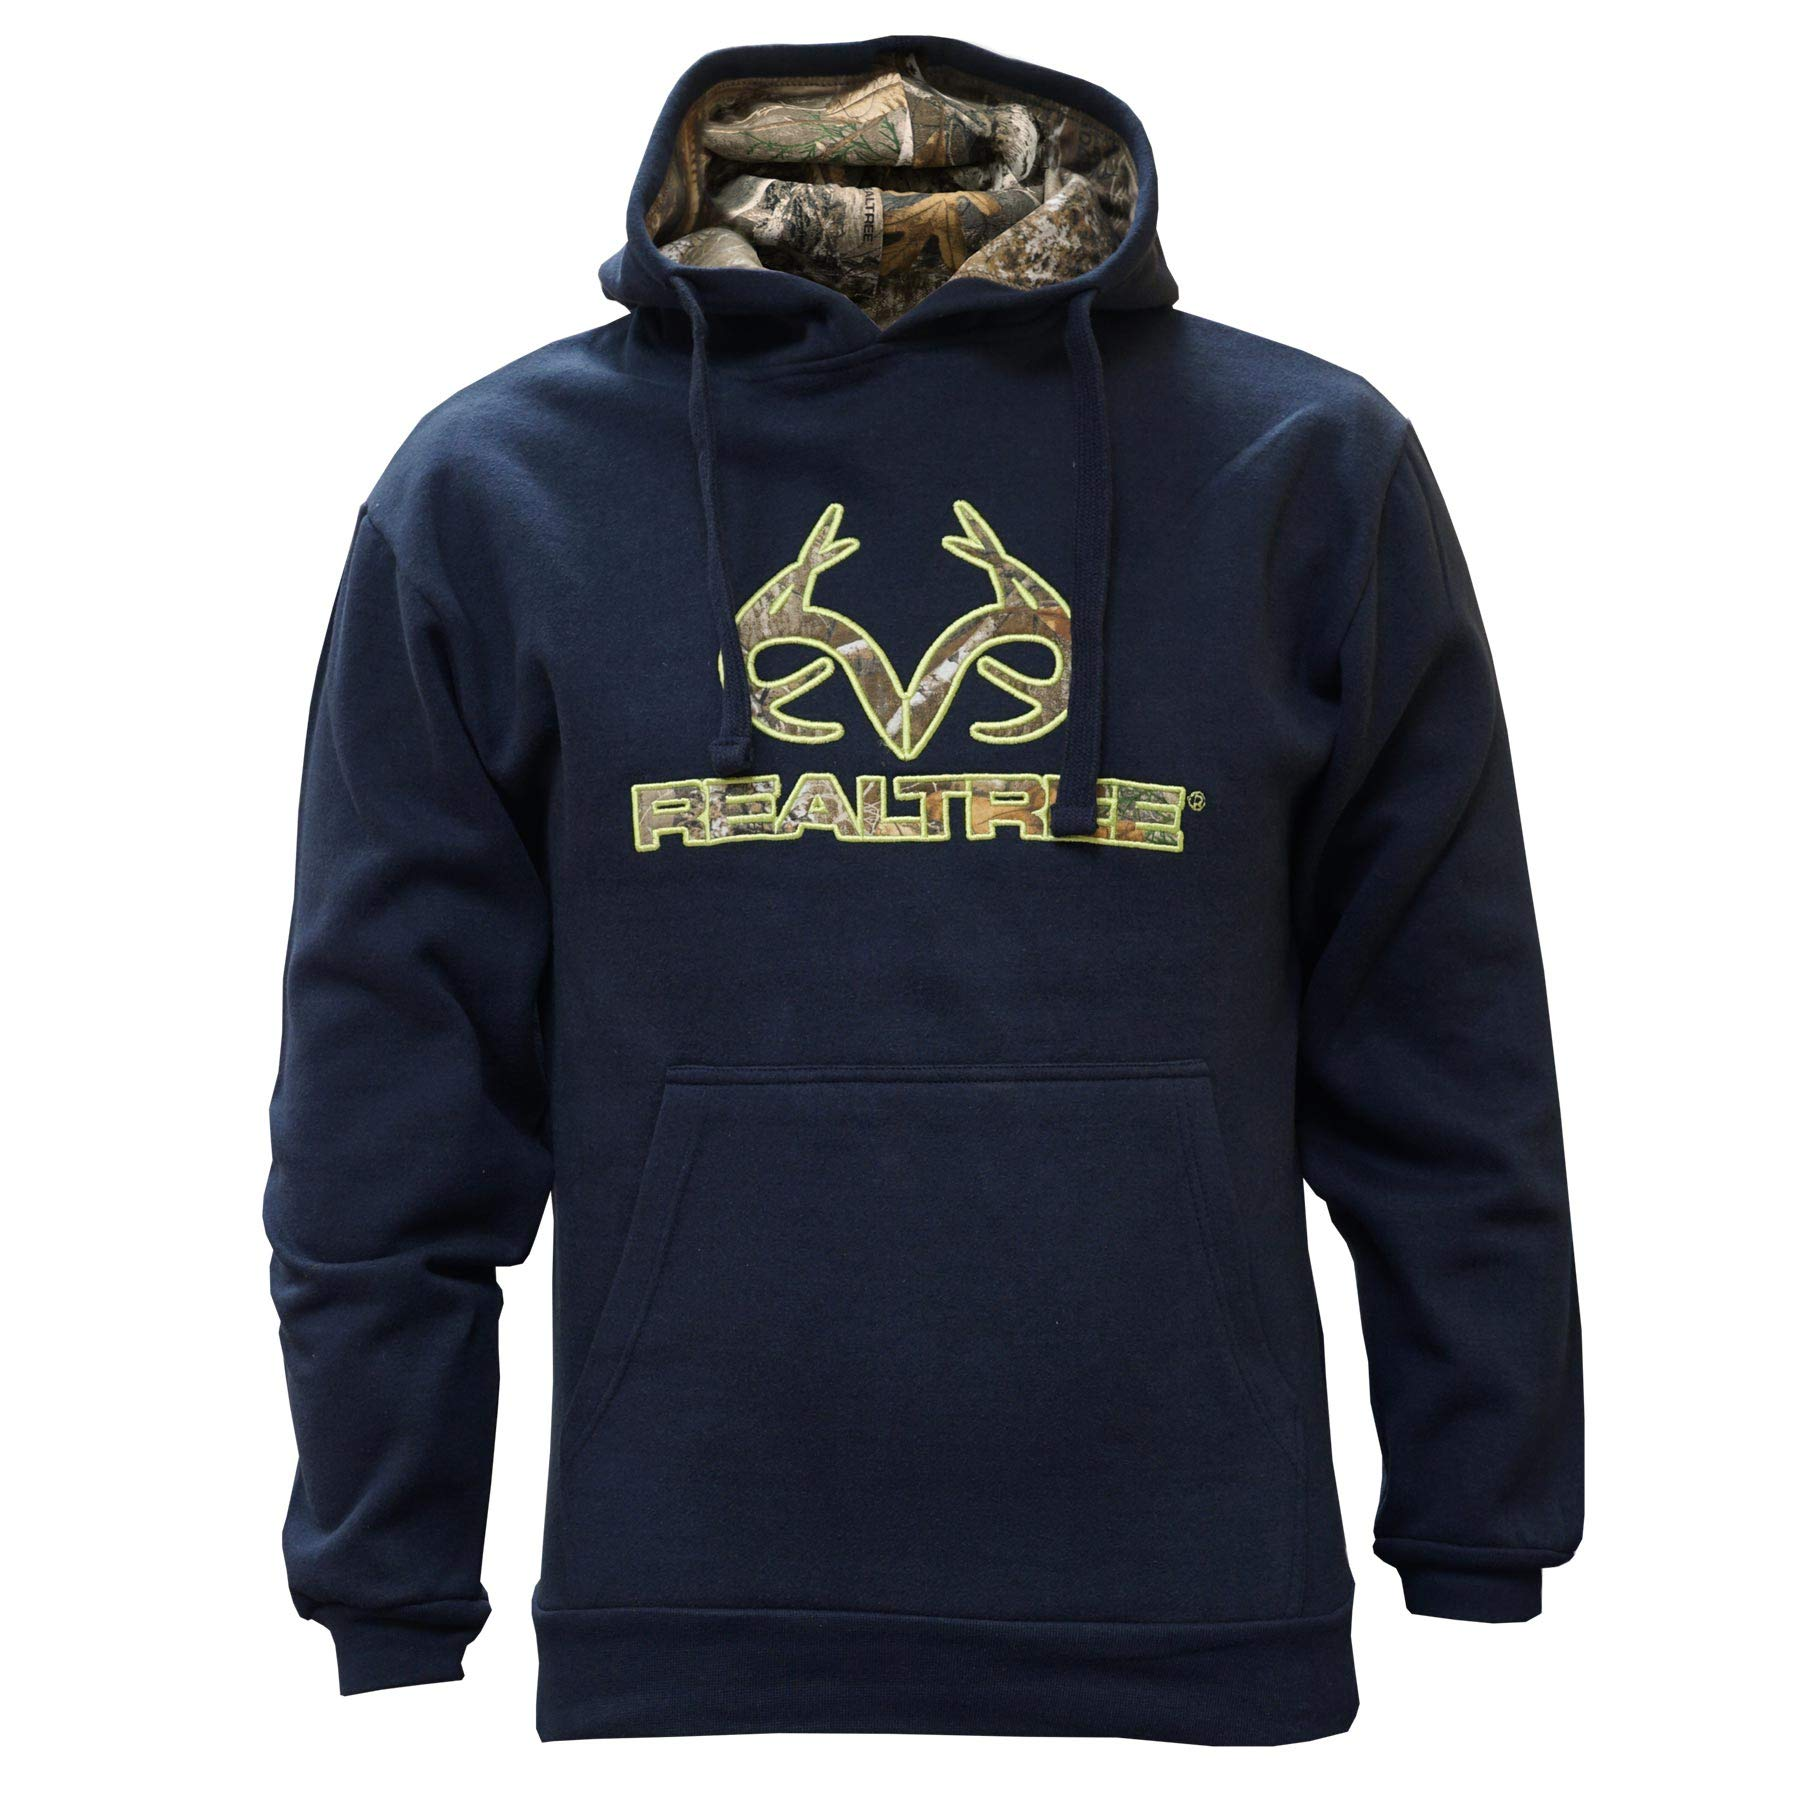 Staghorn Realtree Men's Fleece Applique Hoodie, Airforce Blue, X-Large